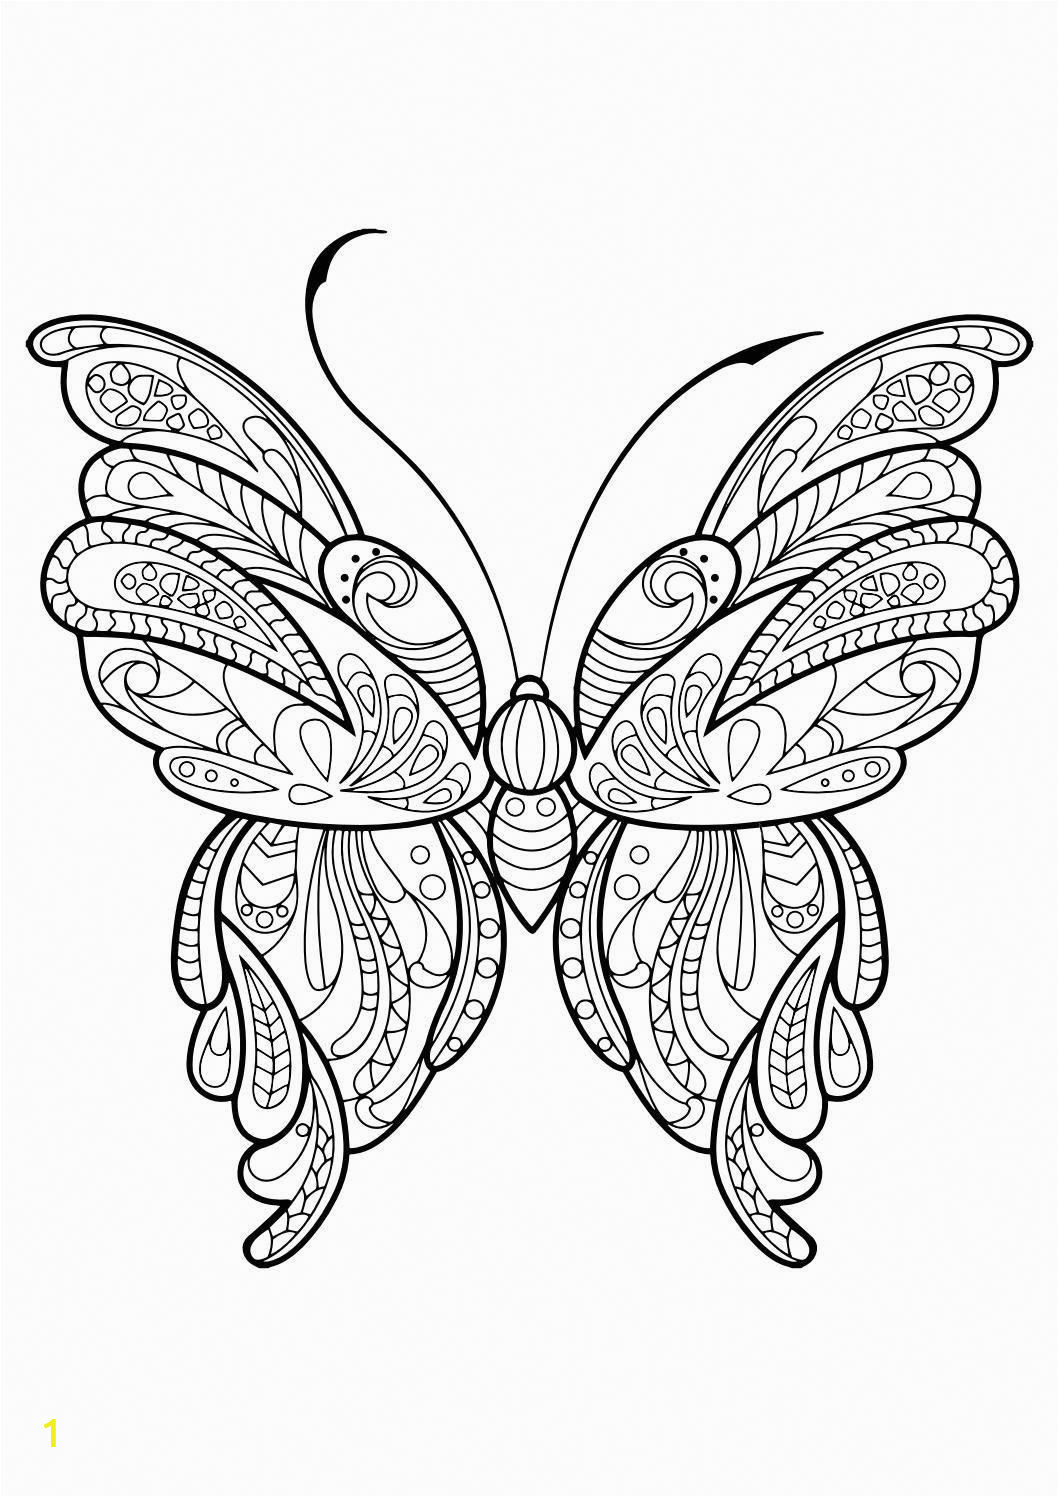 Butterfly Mandala Coloring Pages Realistic Typed Mindfulness Techniques